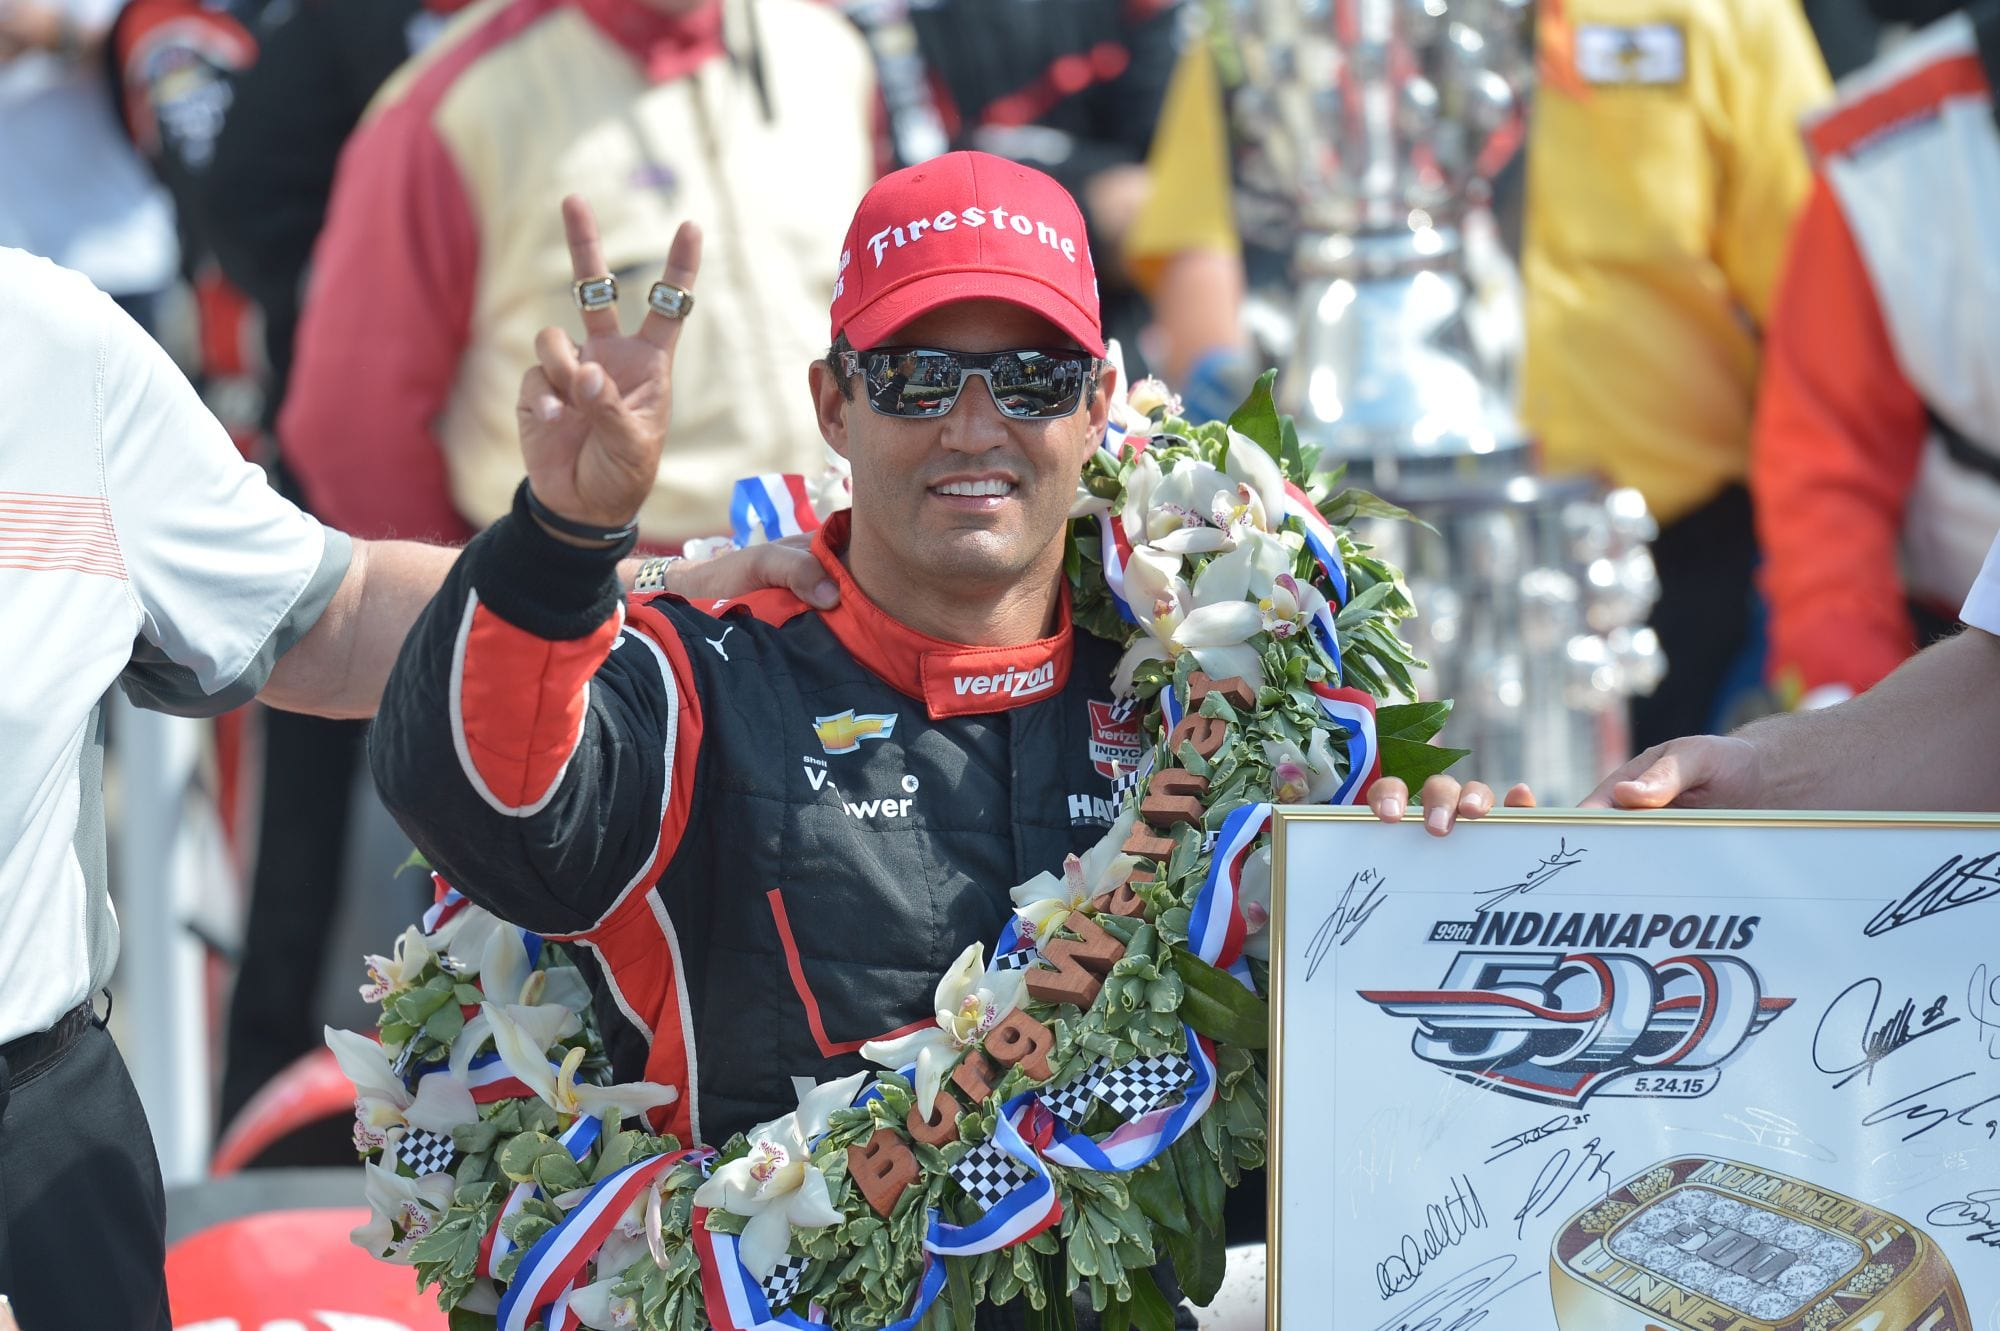 IndyCar 2015 Indy Montoya victory sign credit Chris Owens